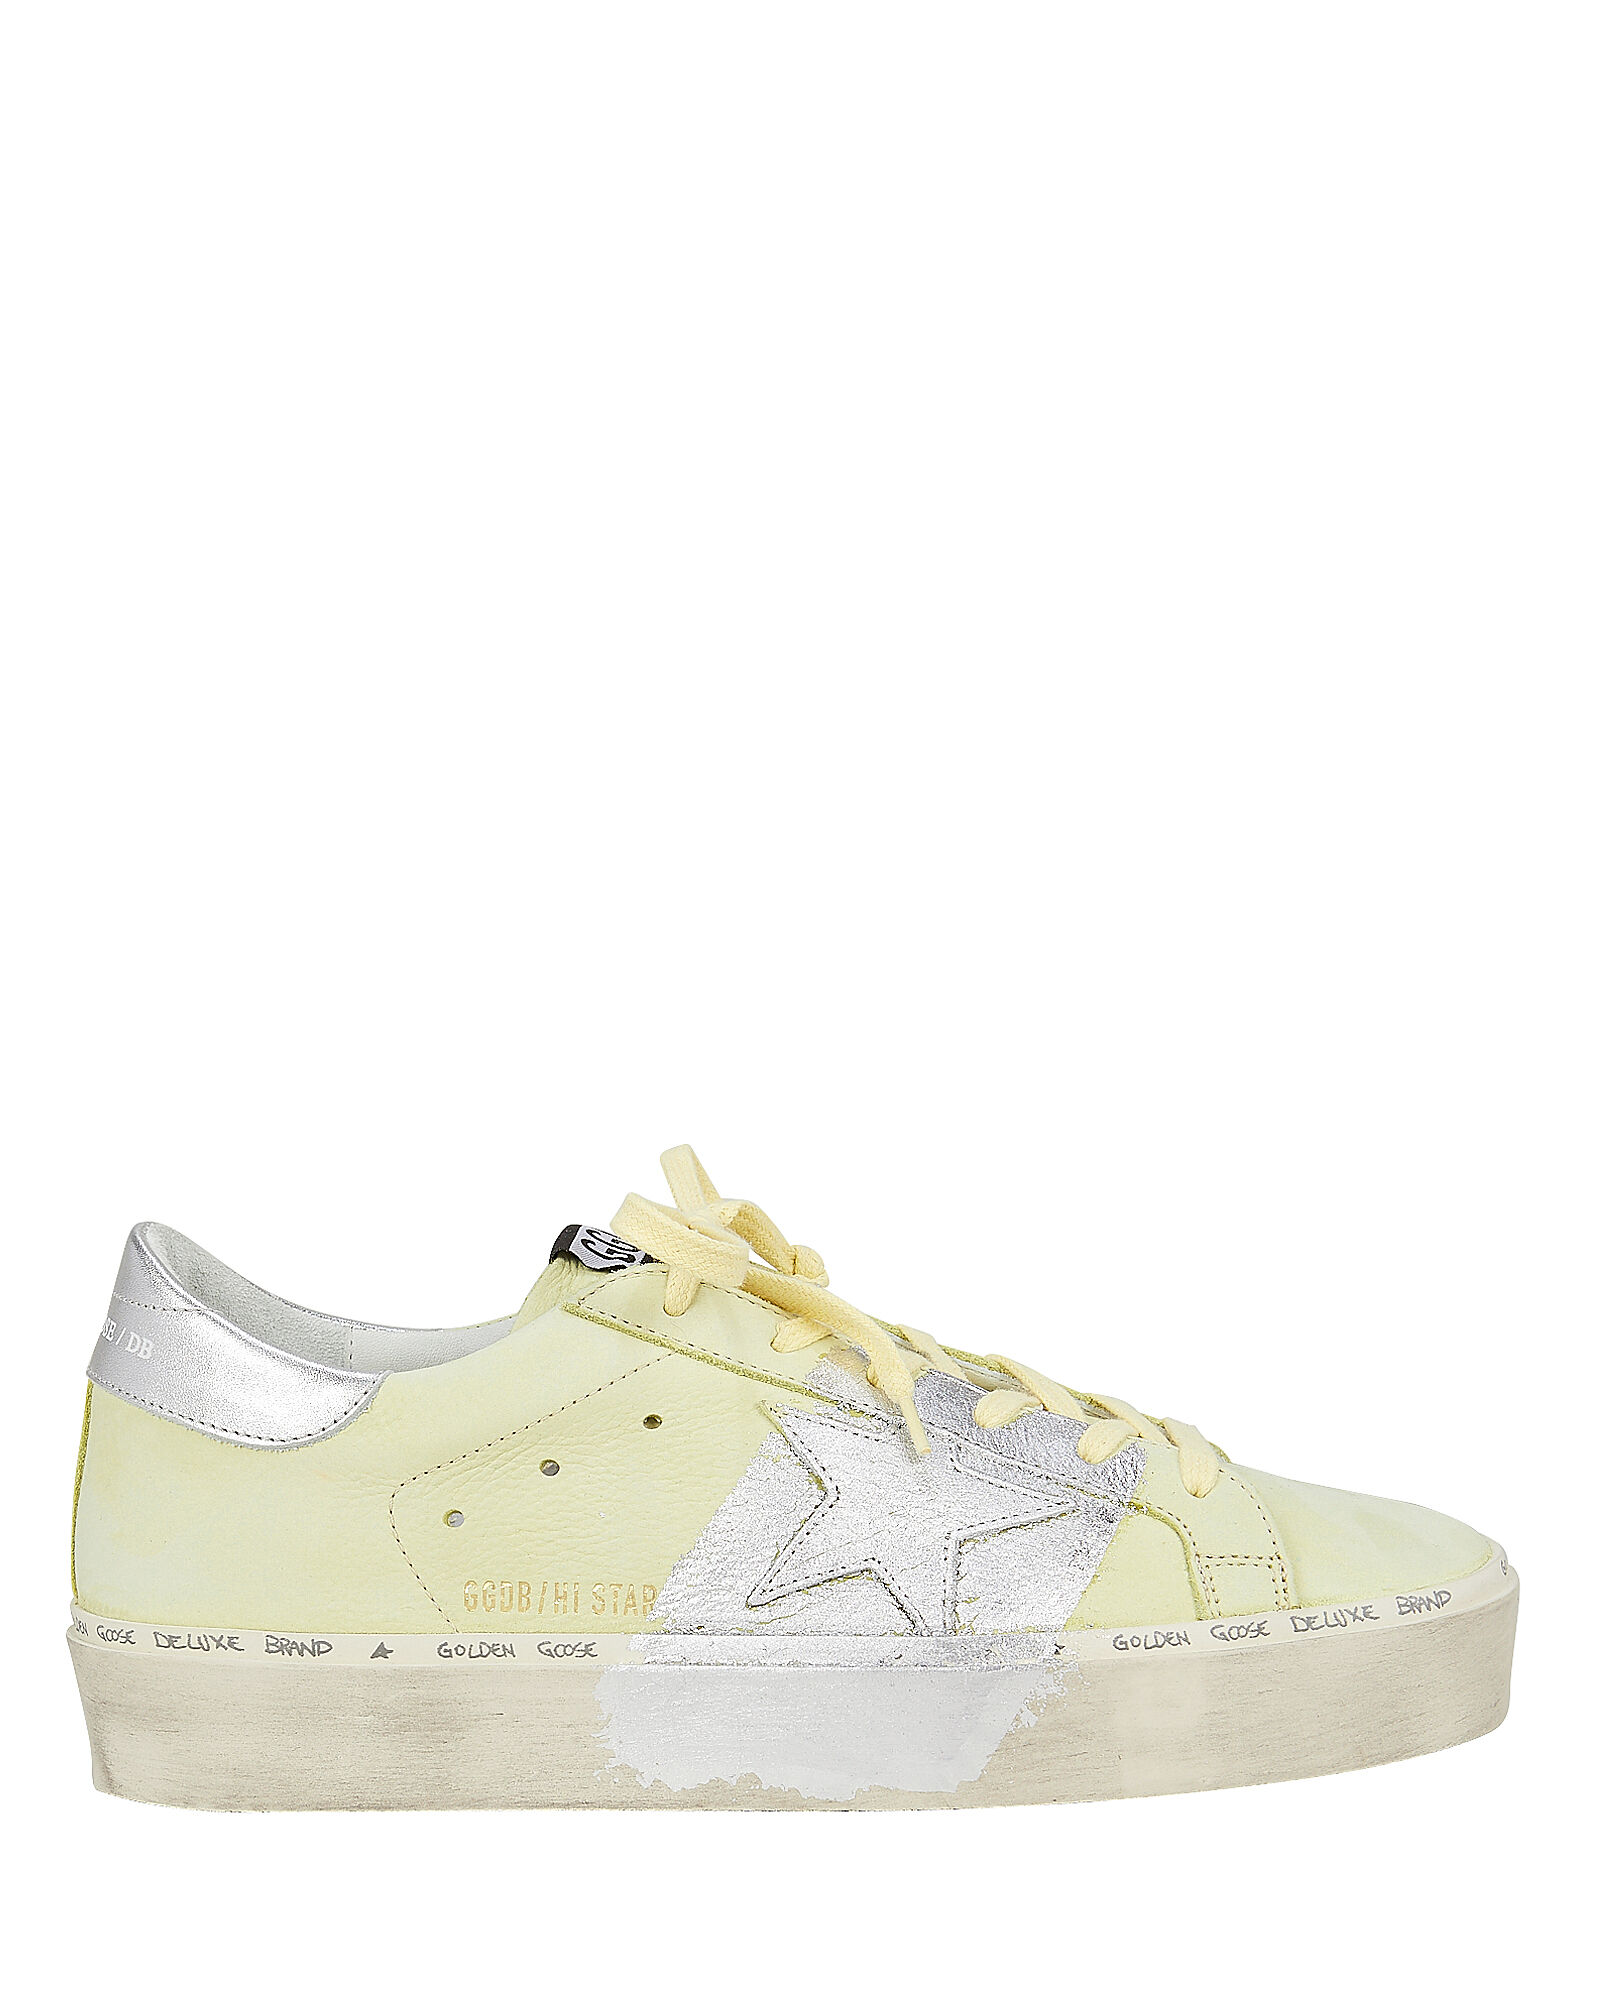 Hi Star Yellow Leather Low-Top Sneakers, YELLOW, hi-res